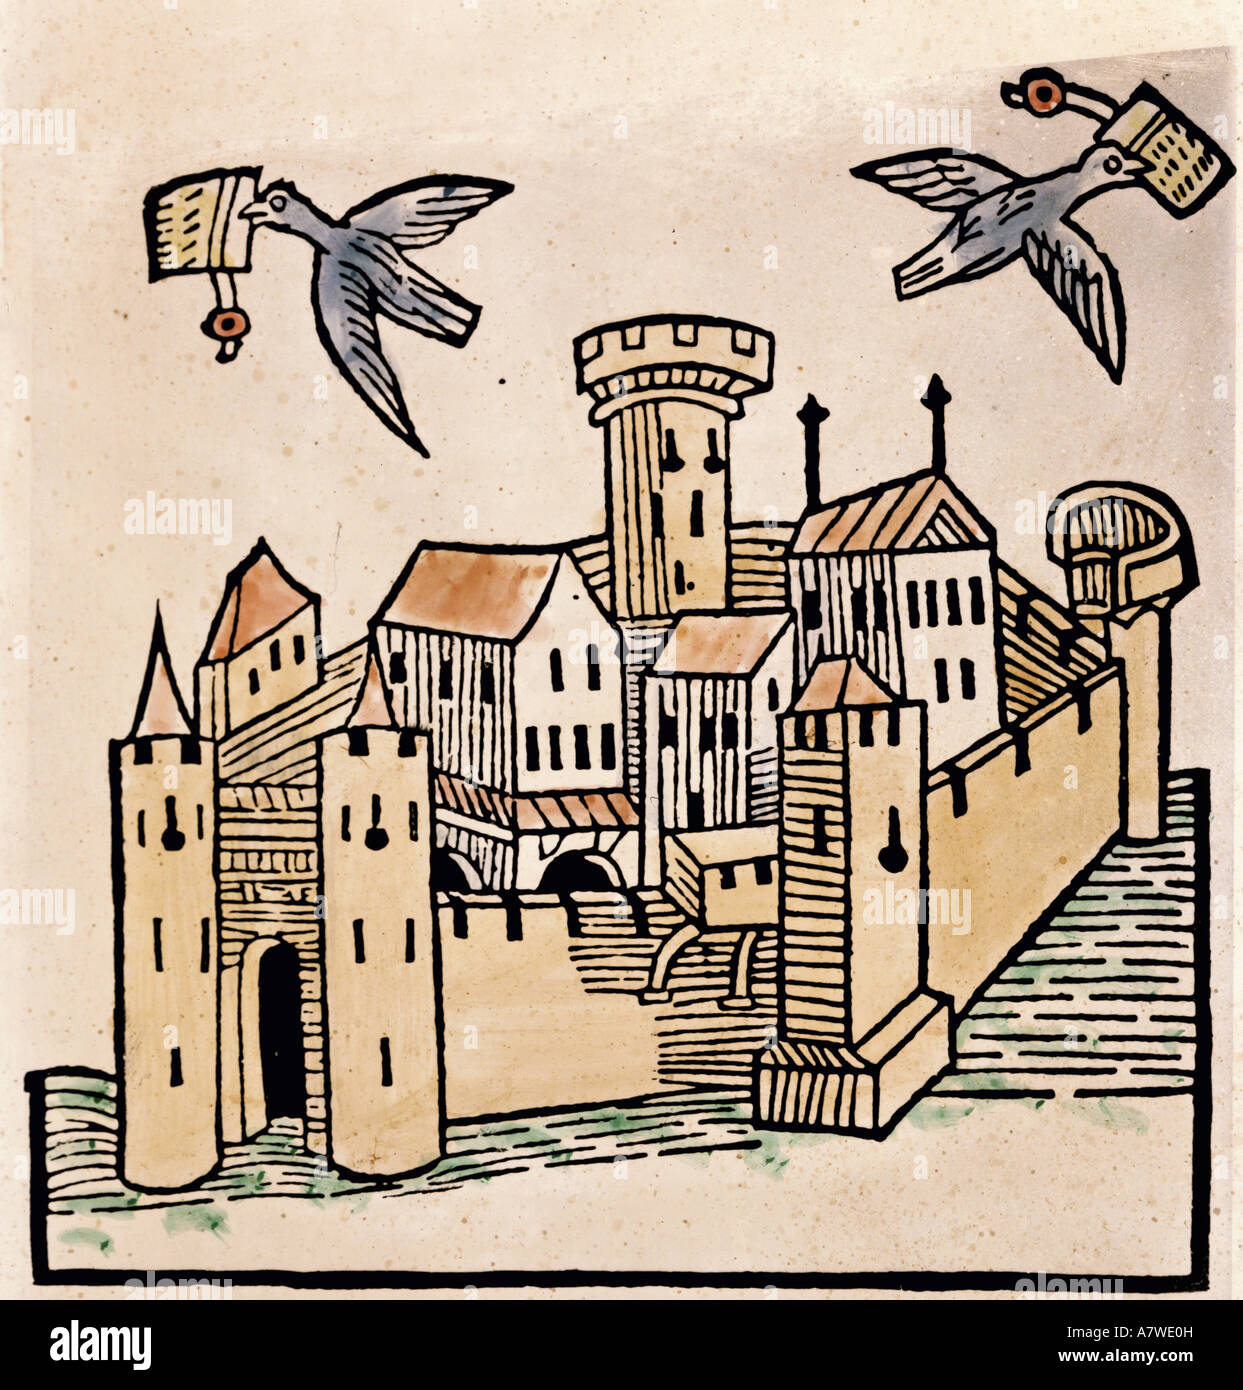 "Mandeville, Jehan de, circa 1300 - 1372, French author/writer, work, ""The  Travels of Sir John Mandeville"", circa 1322 - 1356, figure, carrier pigeons  in ..."